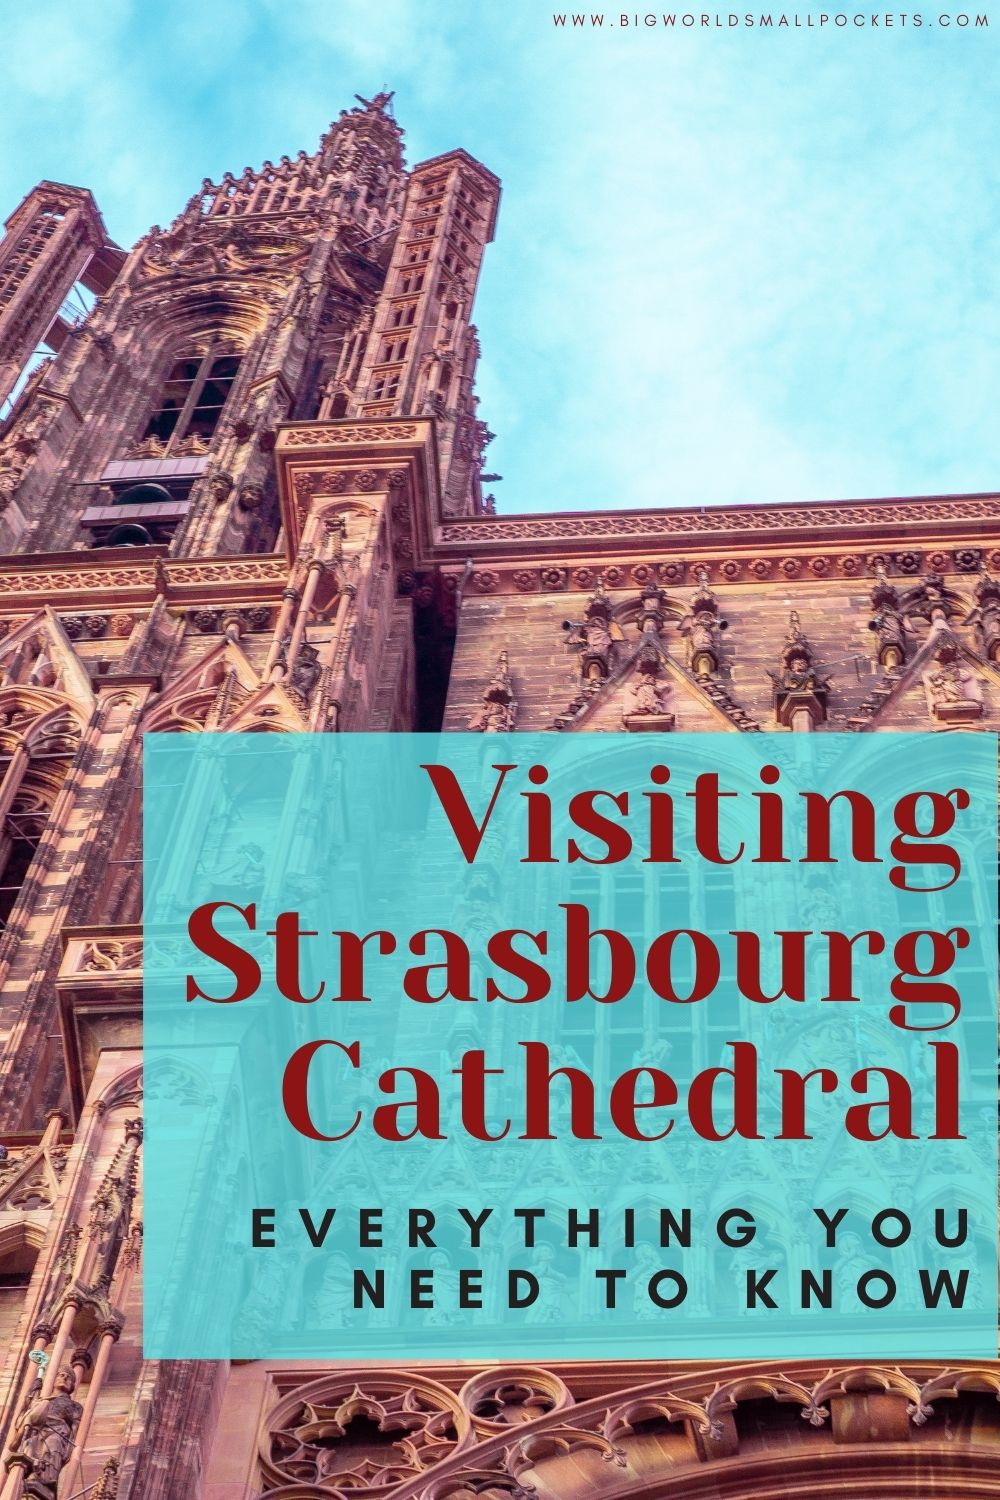 All You Need to Know About Visiting Strasbourg